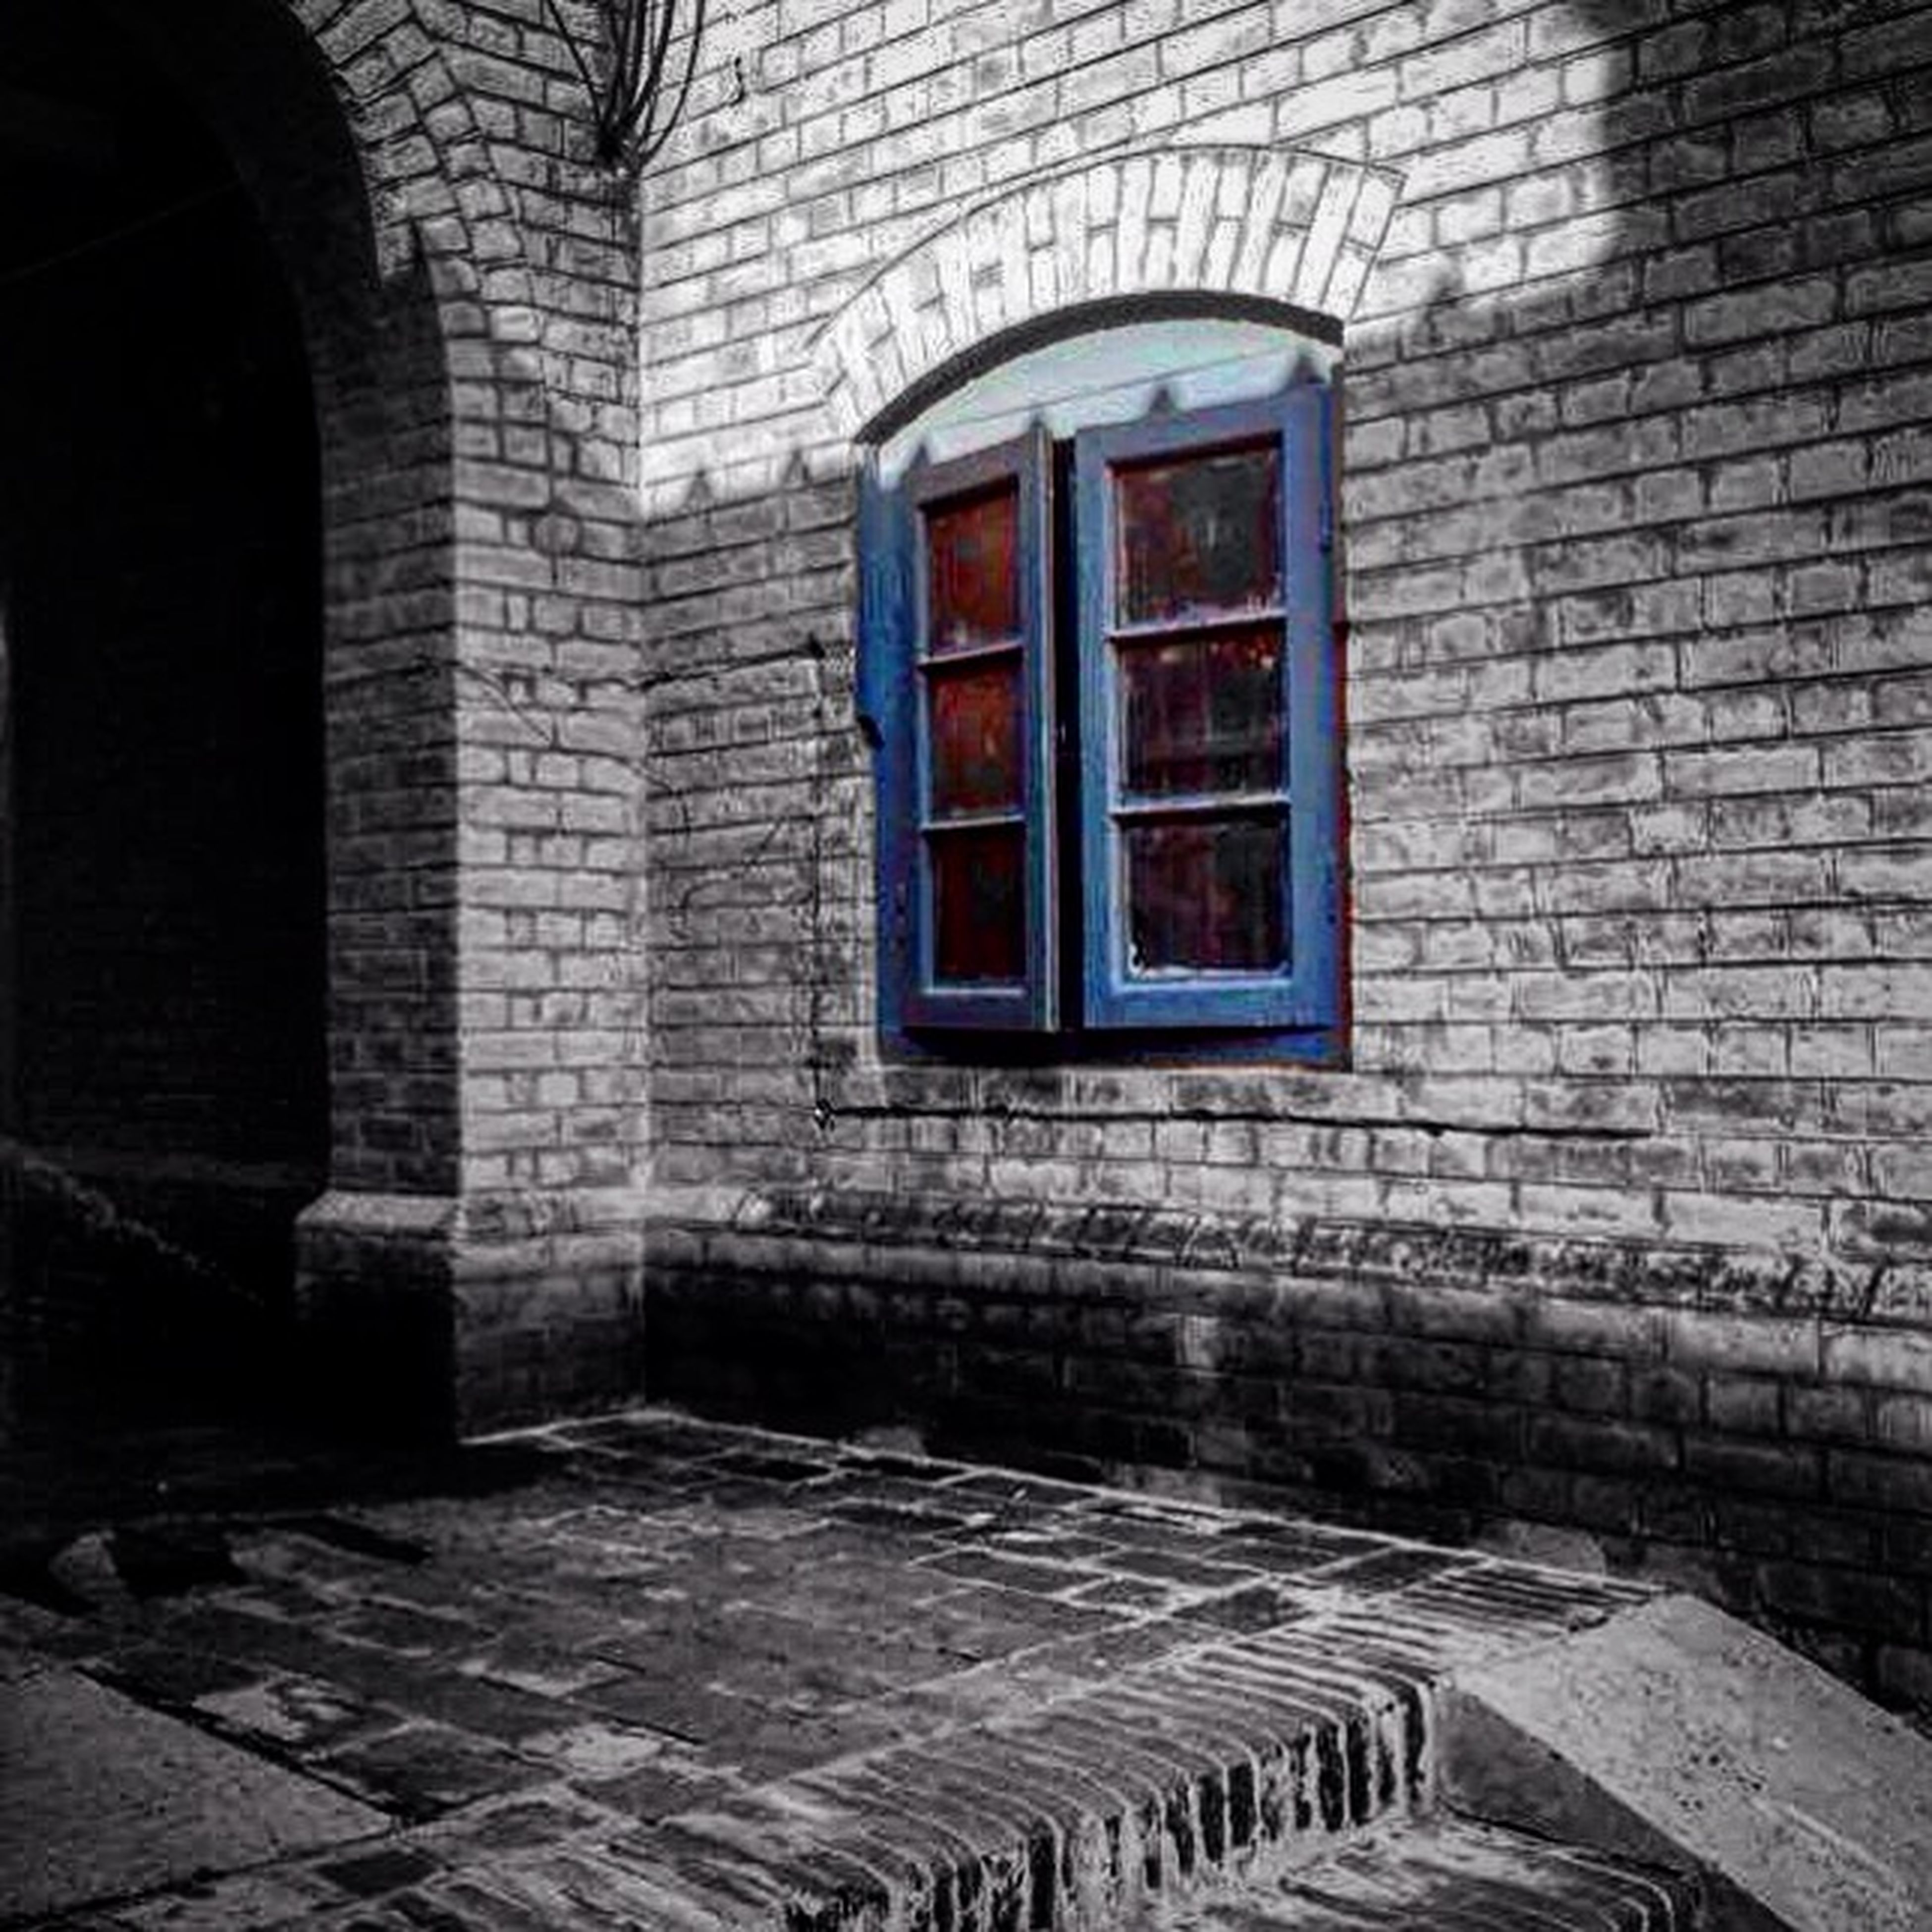 architecture, built structure, building exterior, window, brick wall, stone wall, wall - building feature, arch, old, building, house, abandoned, entrance, wall, day, no people, damaged, obsolete, door, closed